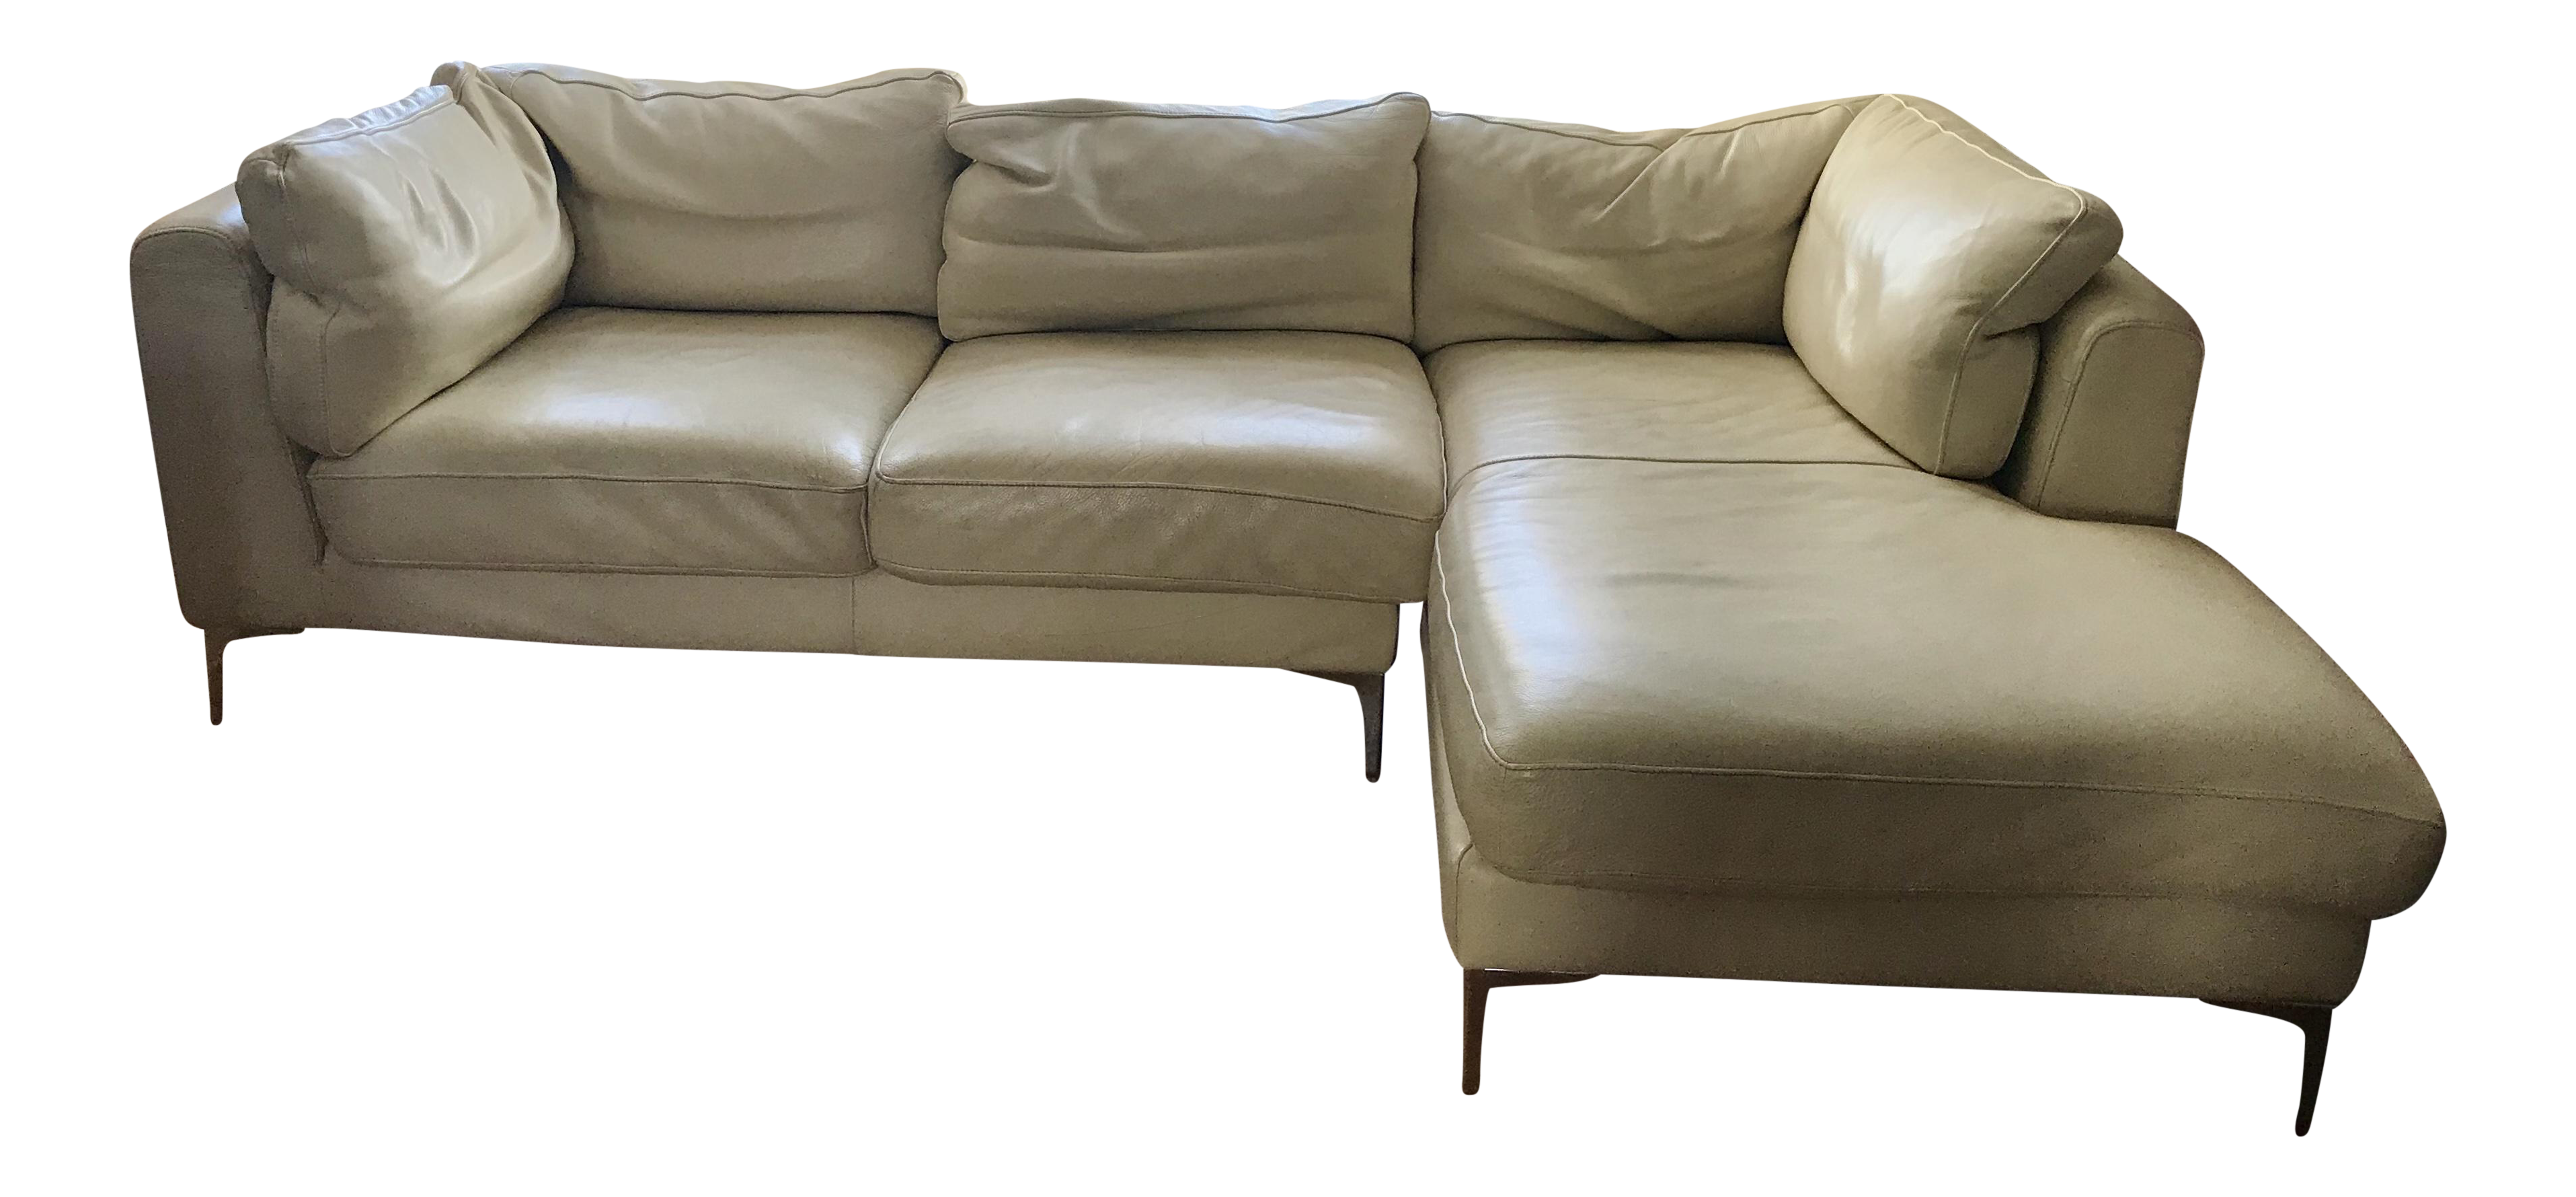 Admirable Nicoletti For Design Within Reach Sectional Sofa Ncnpc Chair Design For Home Ncnpcorg